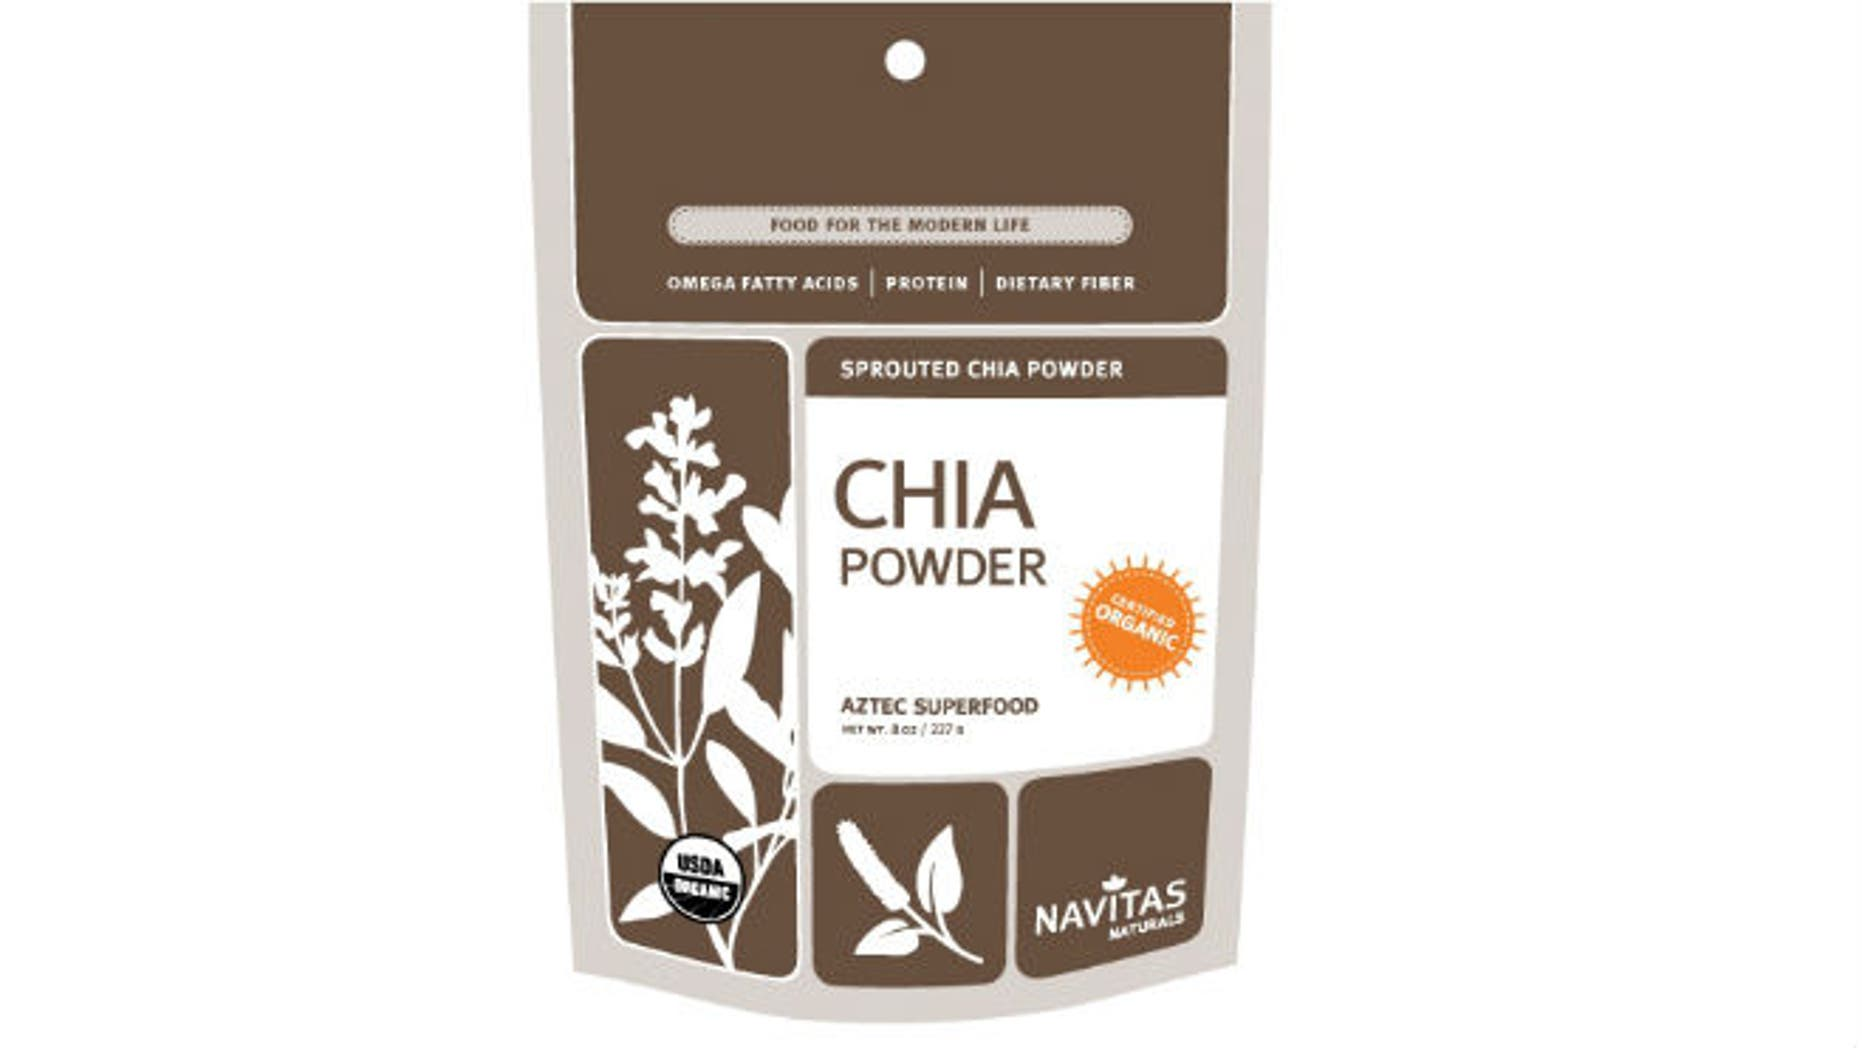 Navitas Naturals is one brand voluntarily recalling chia powder after a salmonella outbreak (Image courtesy of navitasnaturals.com)